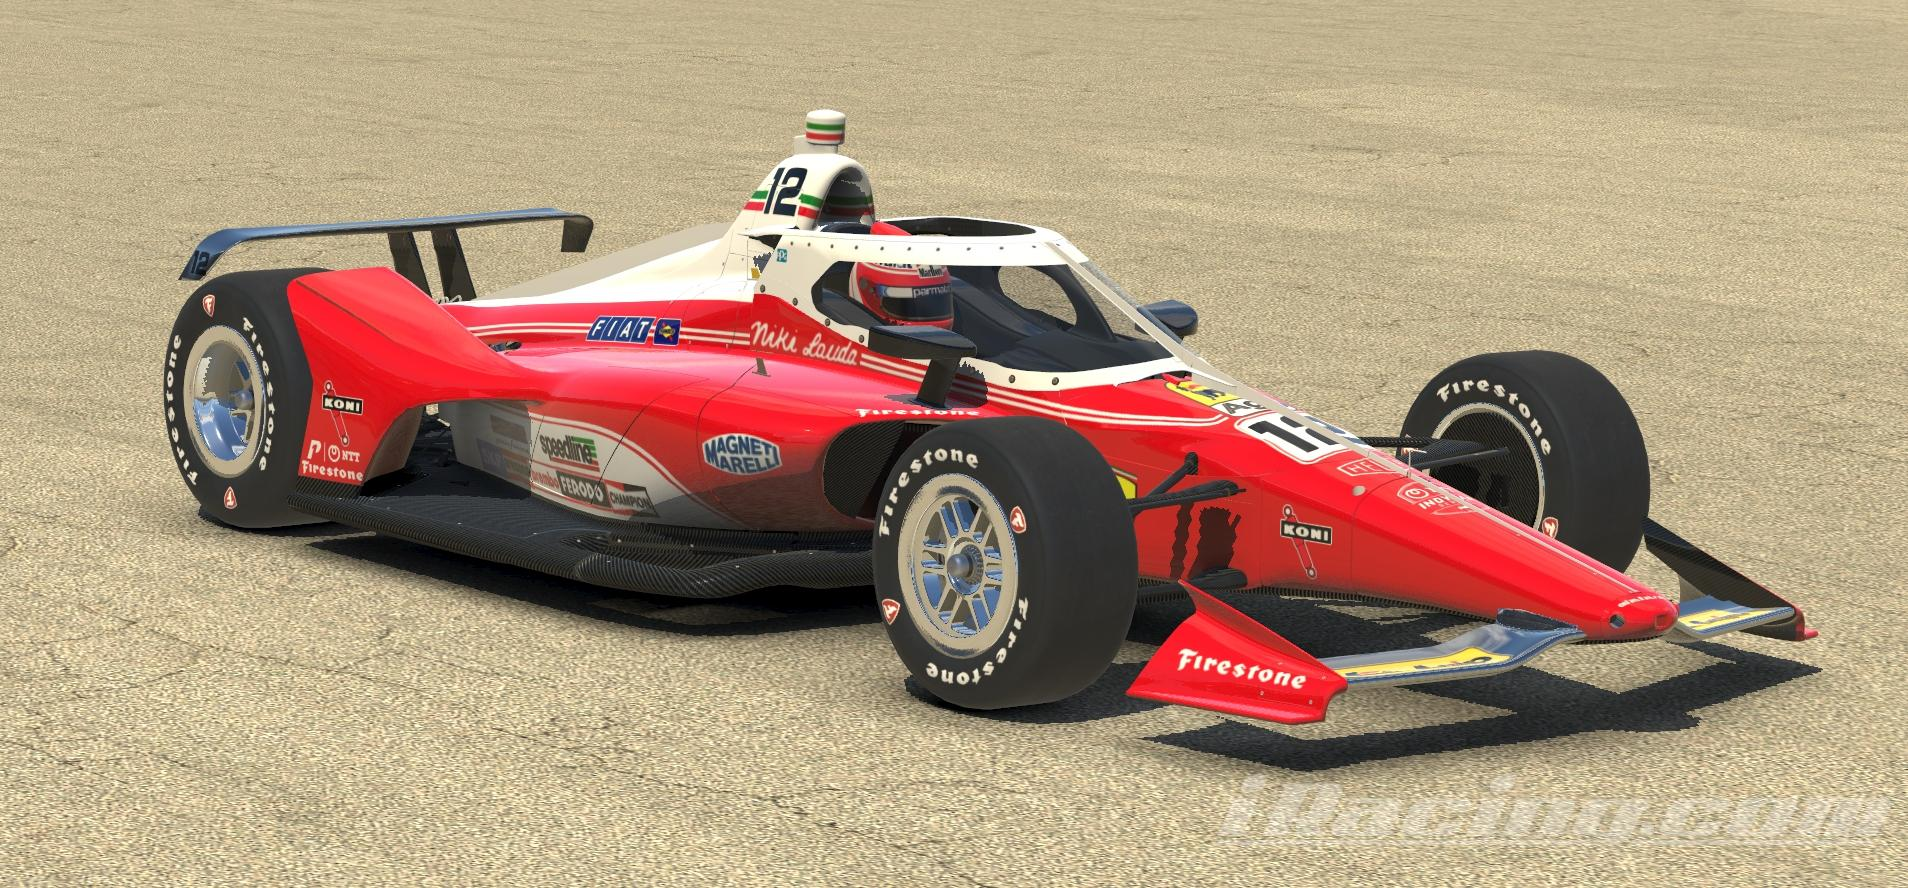 Preview of Indycar Dallara IR18 Niki 2020 by Don Craig